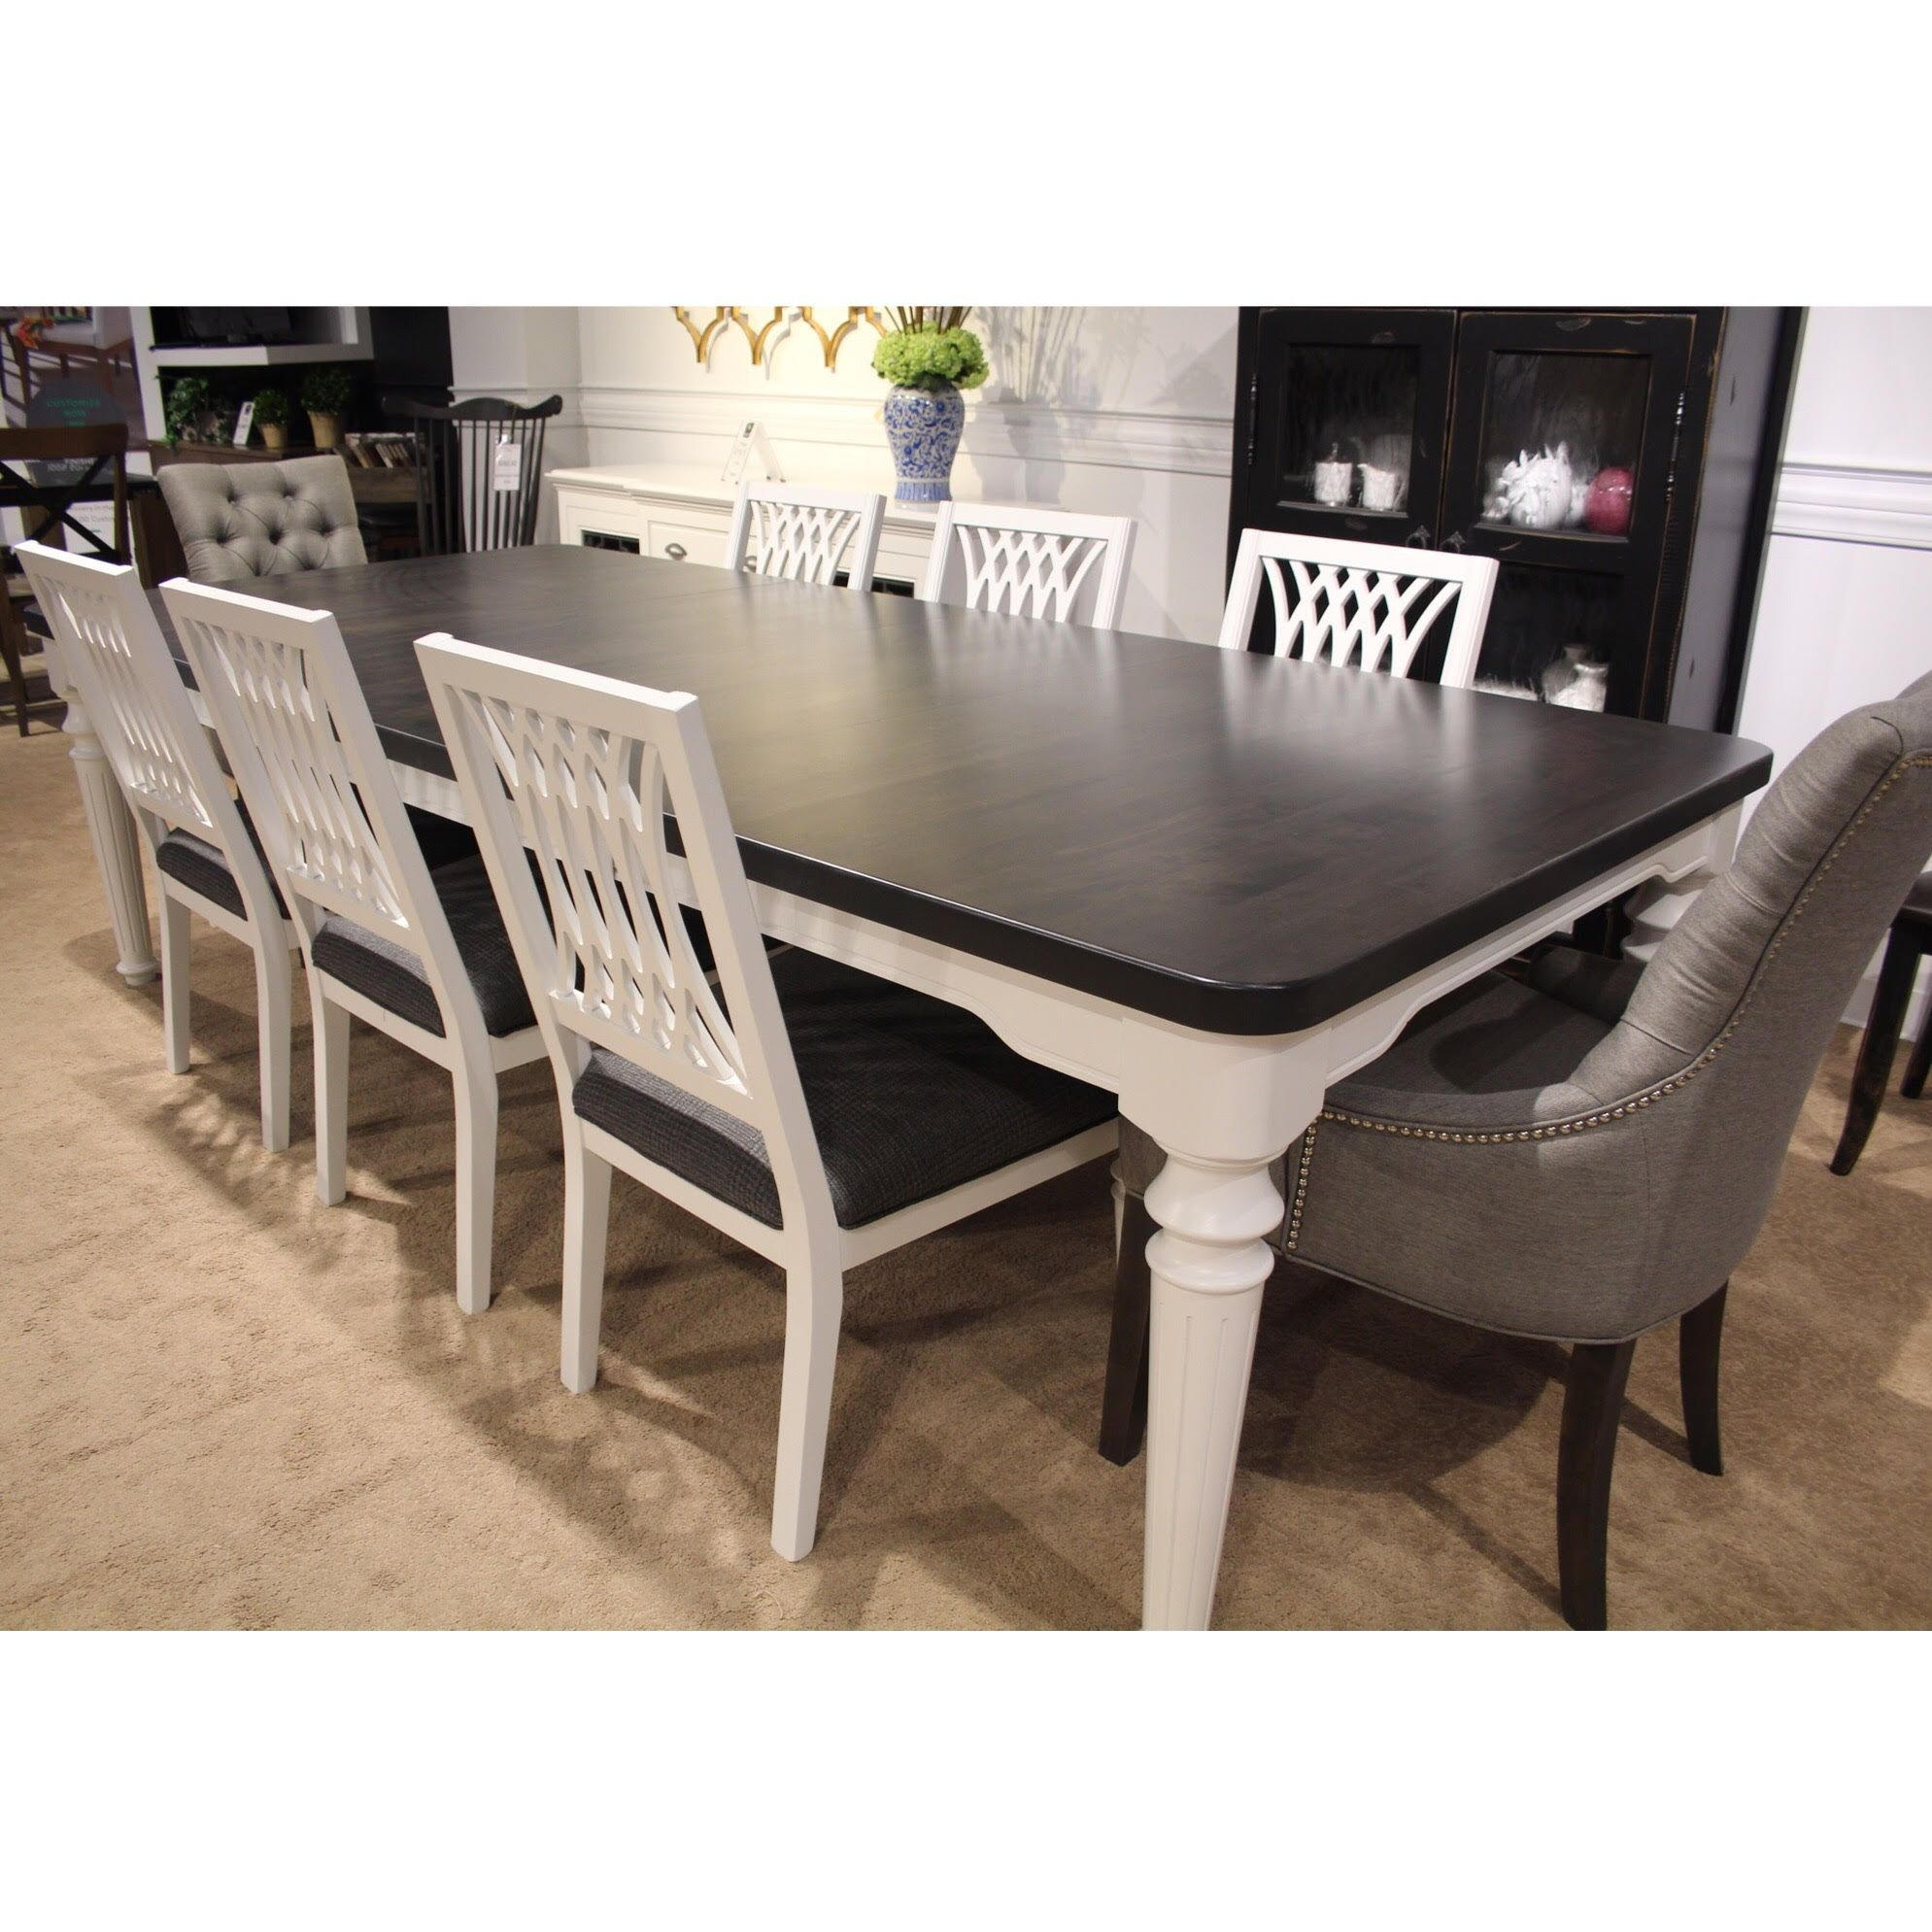 Ca108 Table And Chairs With Ca109c End Chairs 9 Piece Set White Dining Table Canadel Furniture Grey Dining Room